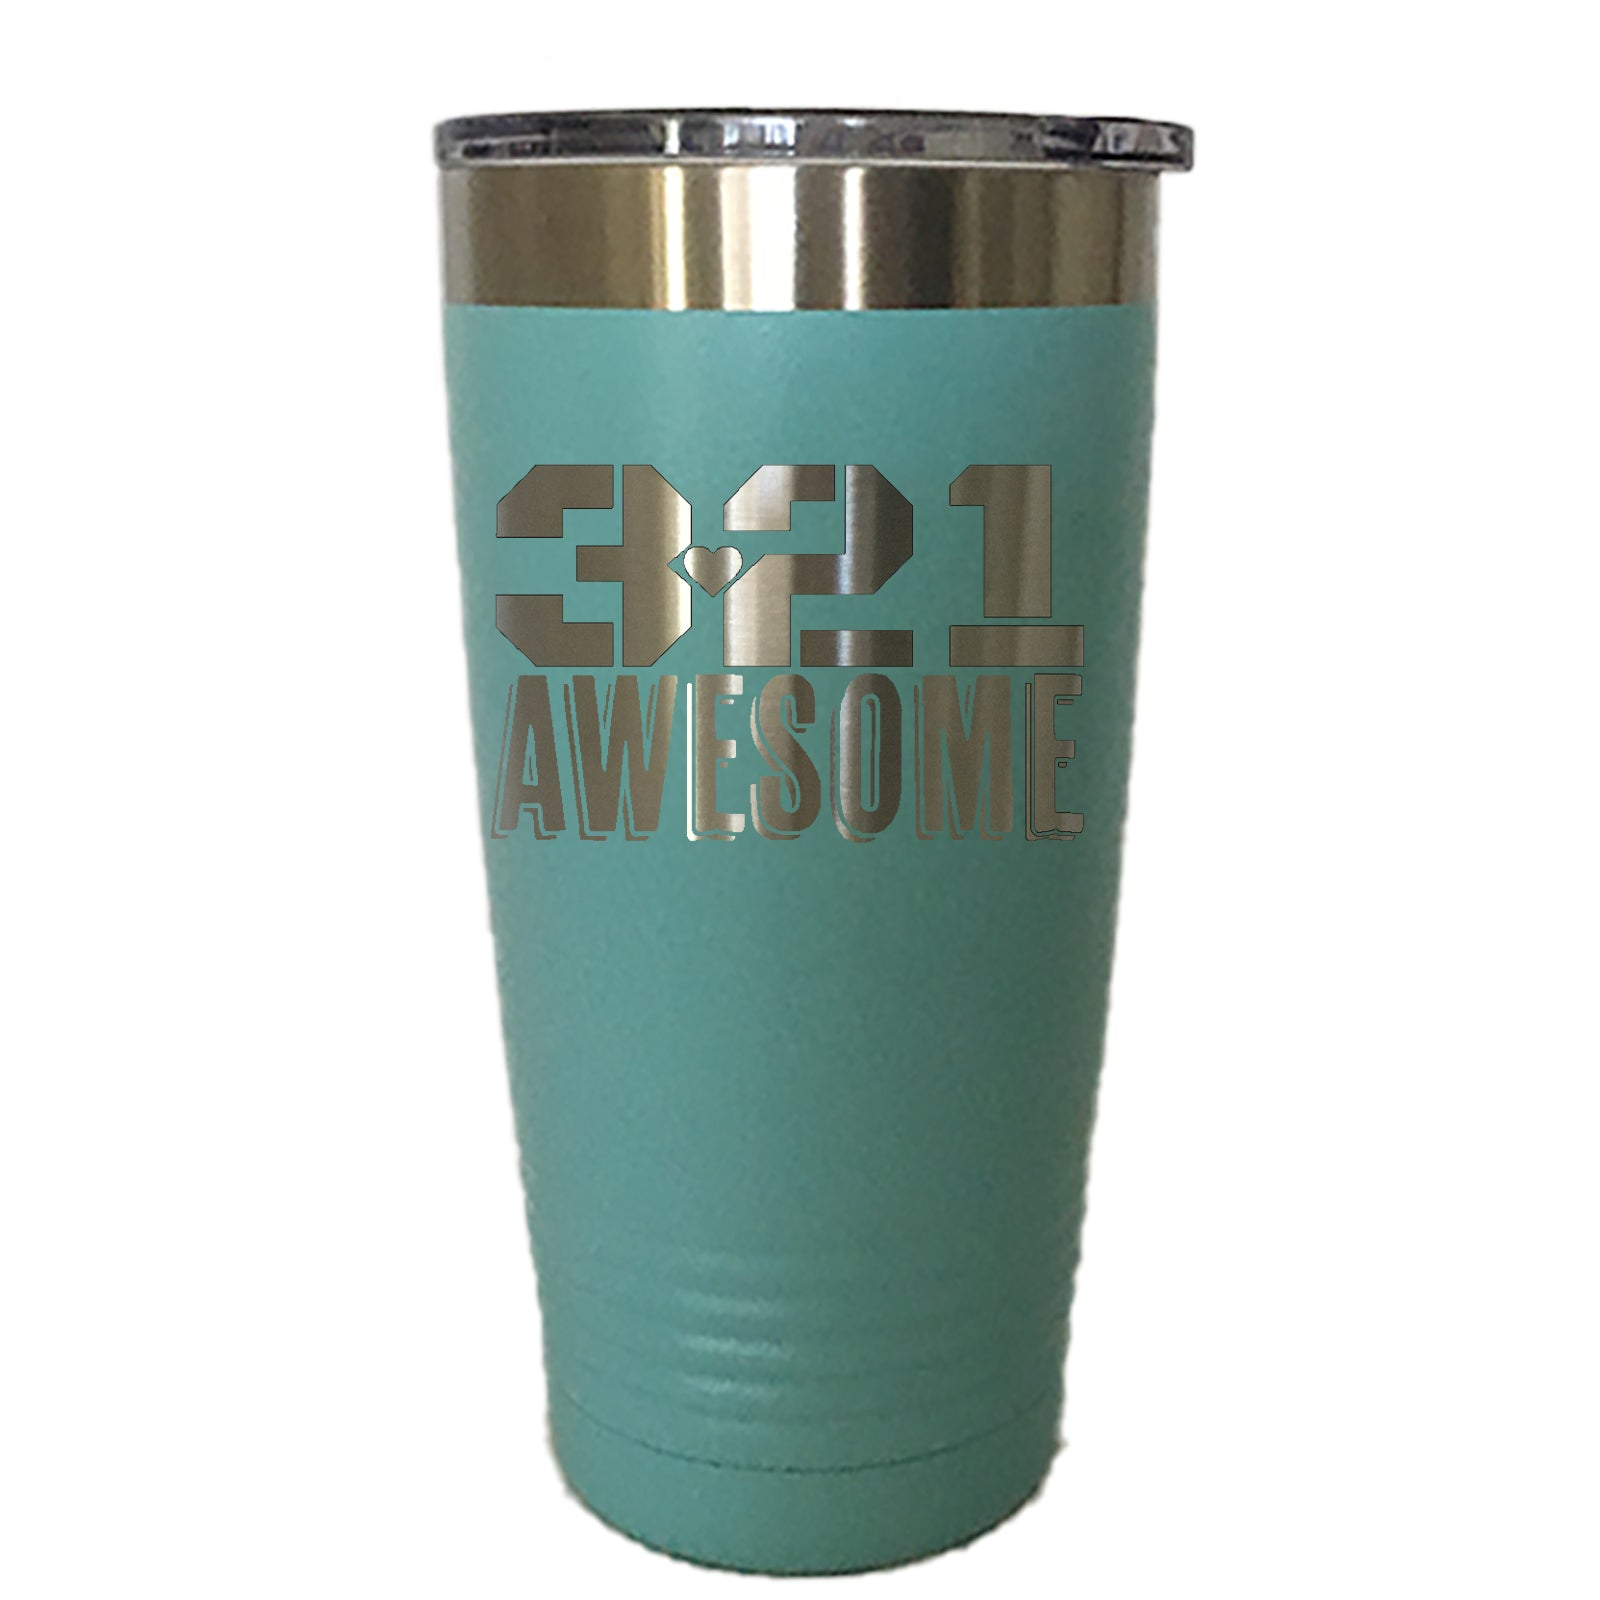 3.21 AWESOME - Tumbler Drinkware